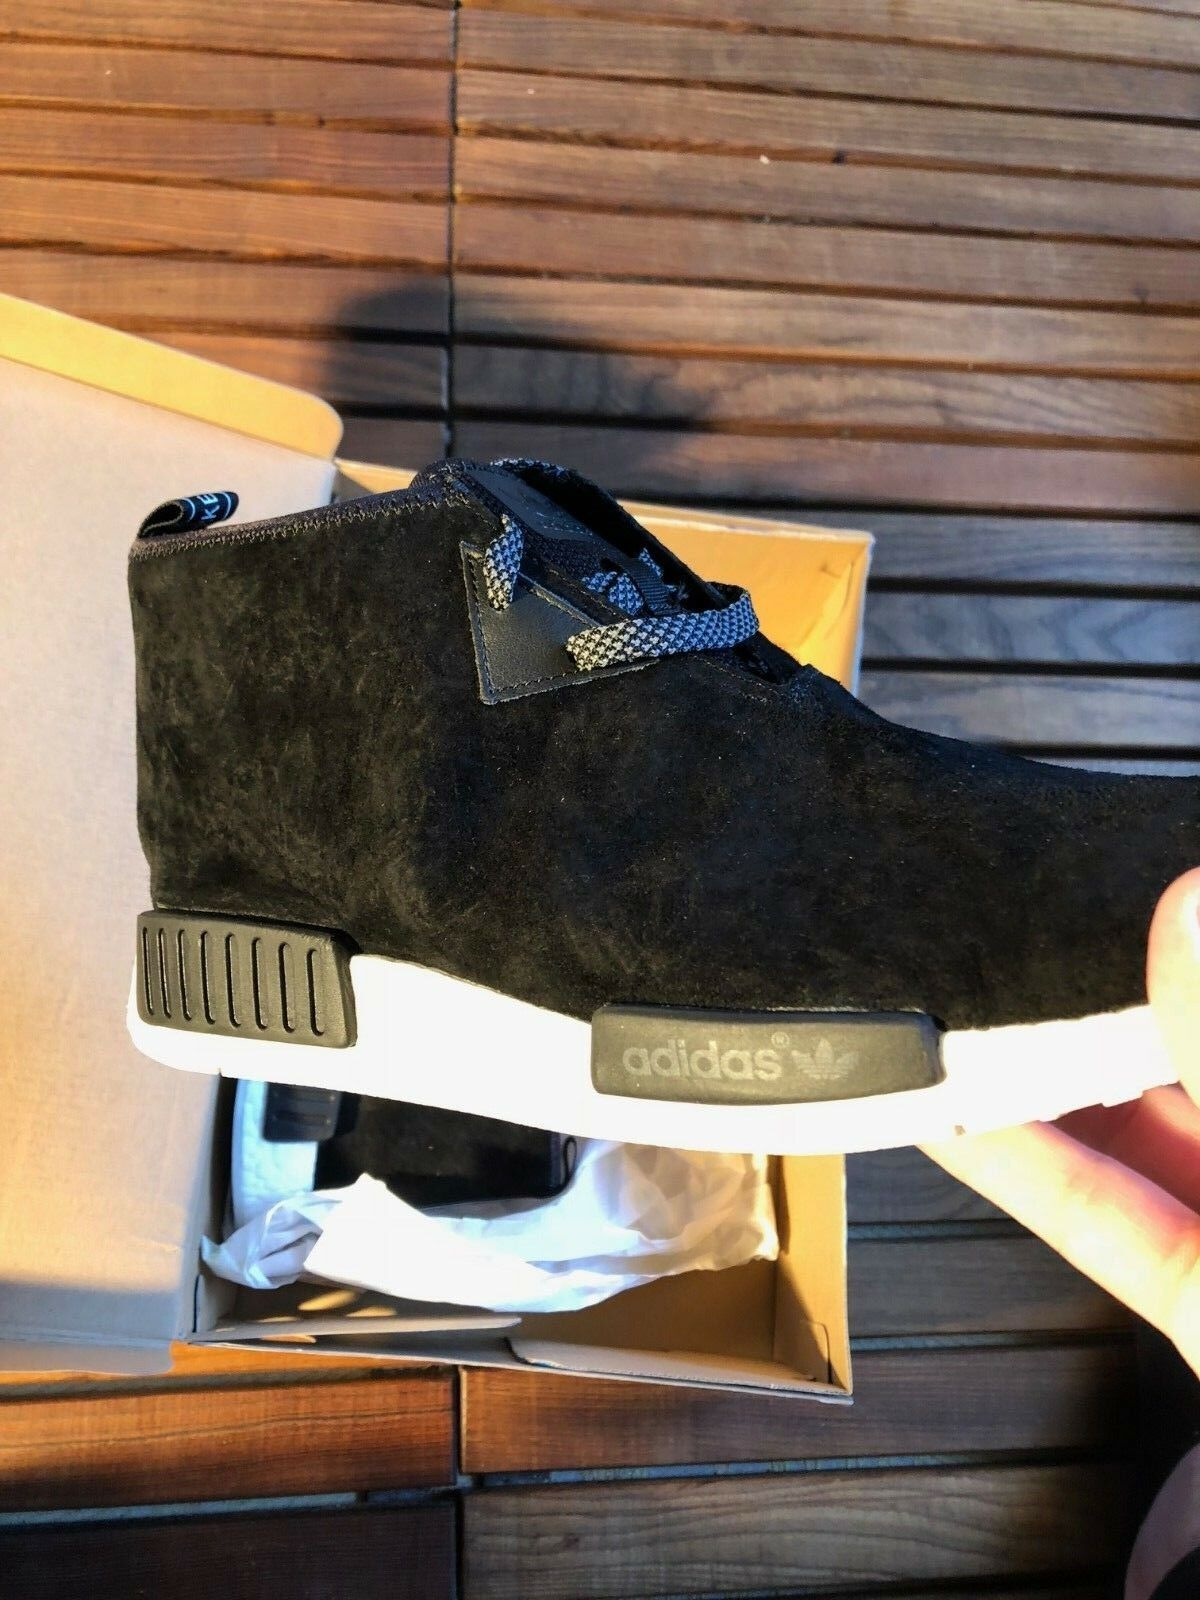 Adidas NMD Chukka Black Sneakers Size 46